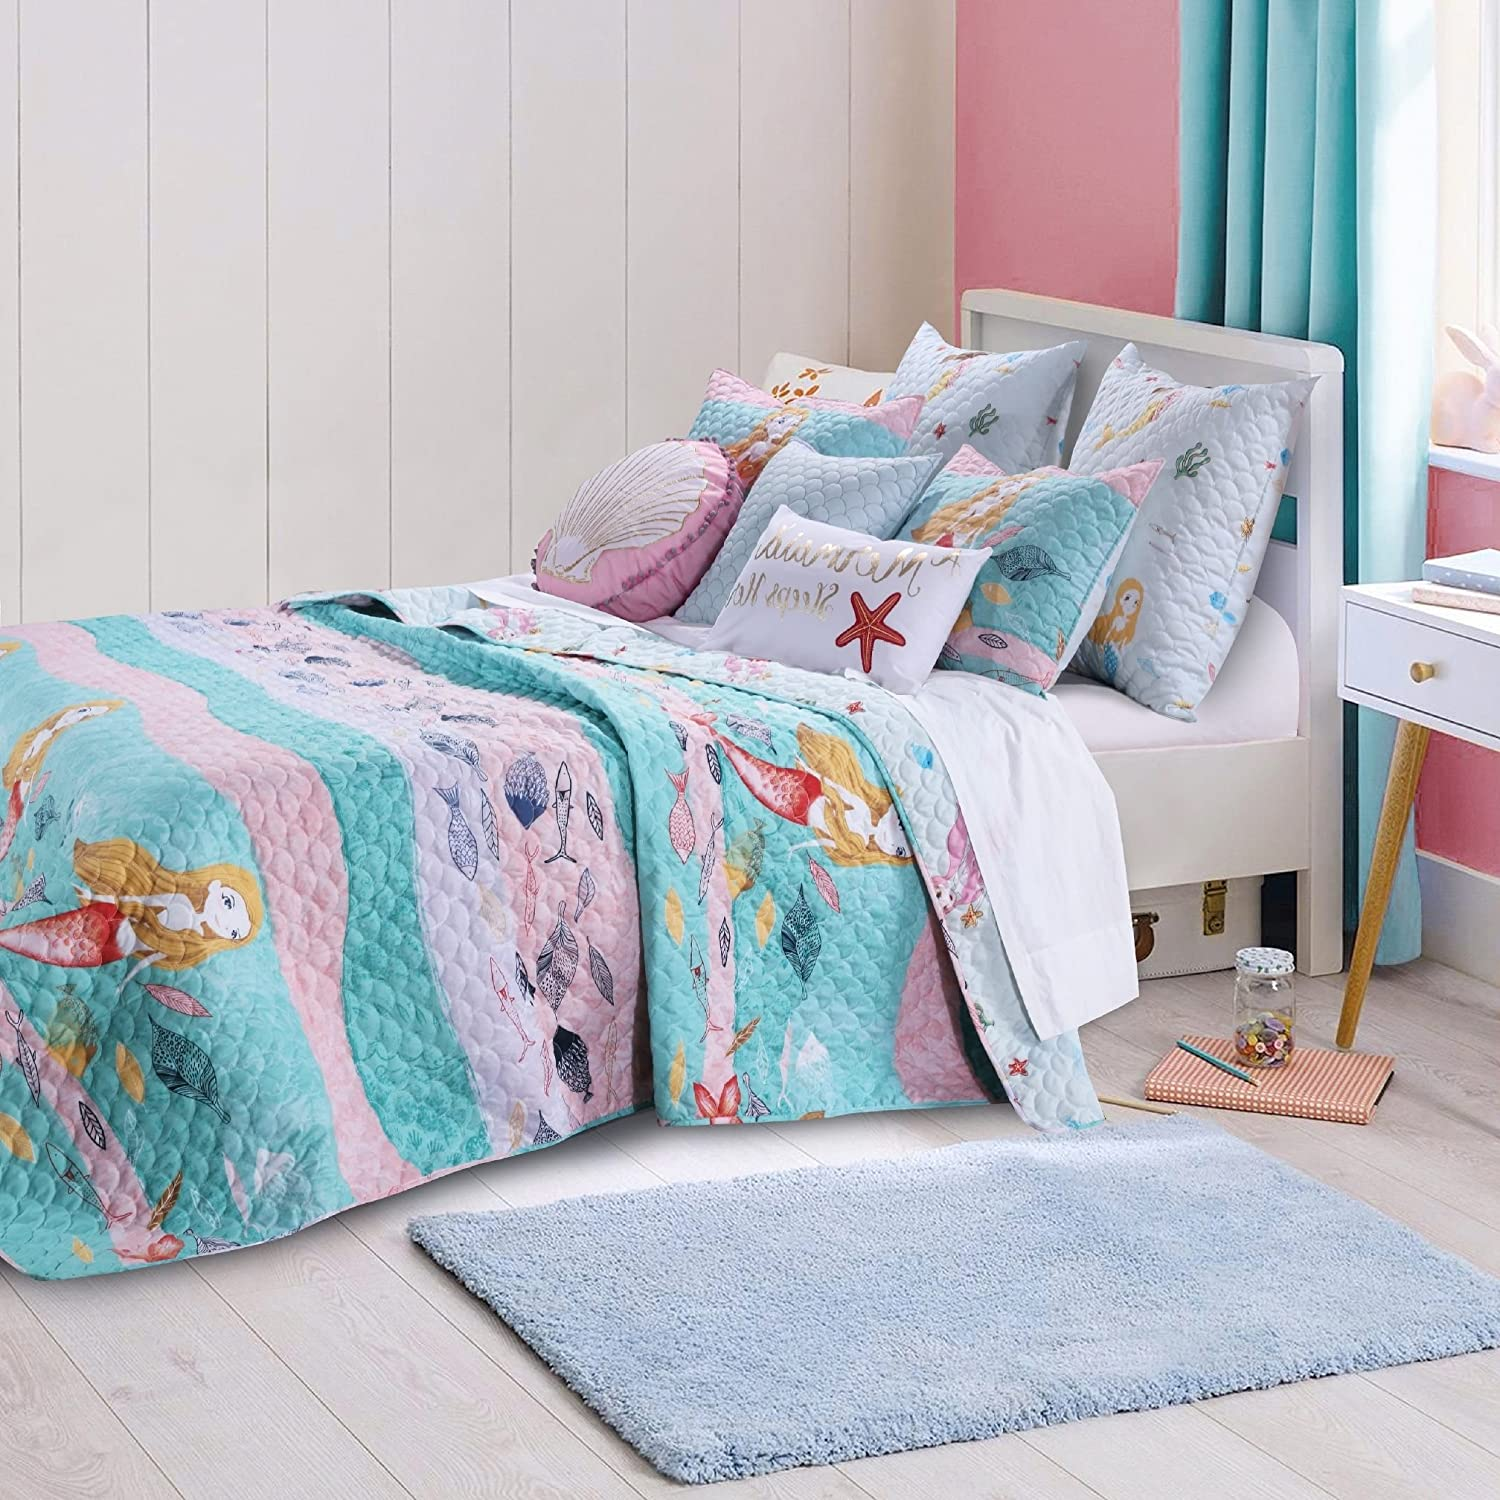 2 Piece Underwater Sea Mermaids Pattern Reversible Quilt Set Twin Size, Printed Coastal Starfish Fish Seashells Seahorse Corals Bedding, Whimsical Modern Nautical Print, Fun Girls Bedroom, Pink, Blue S & E